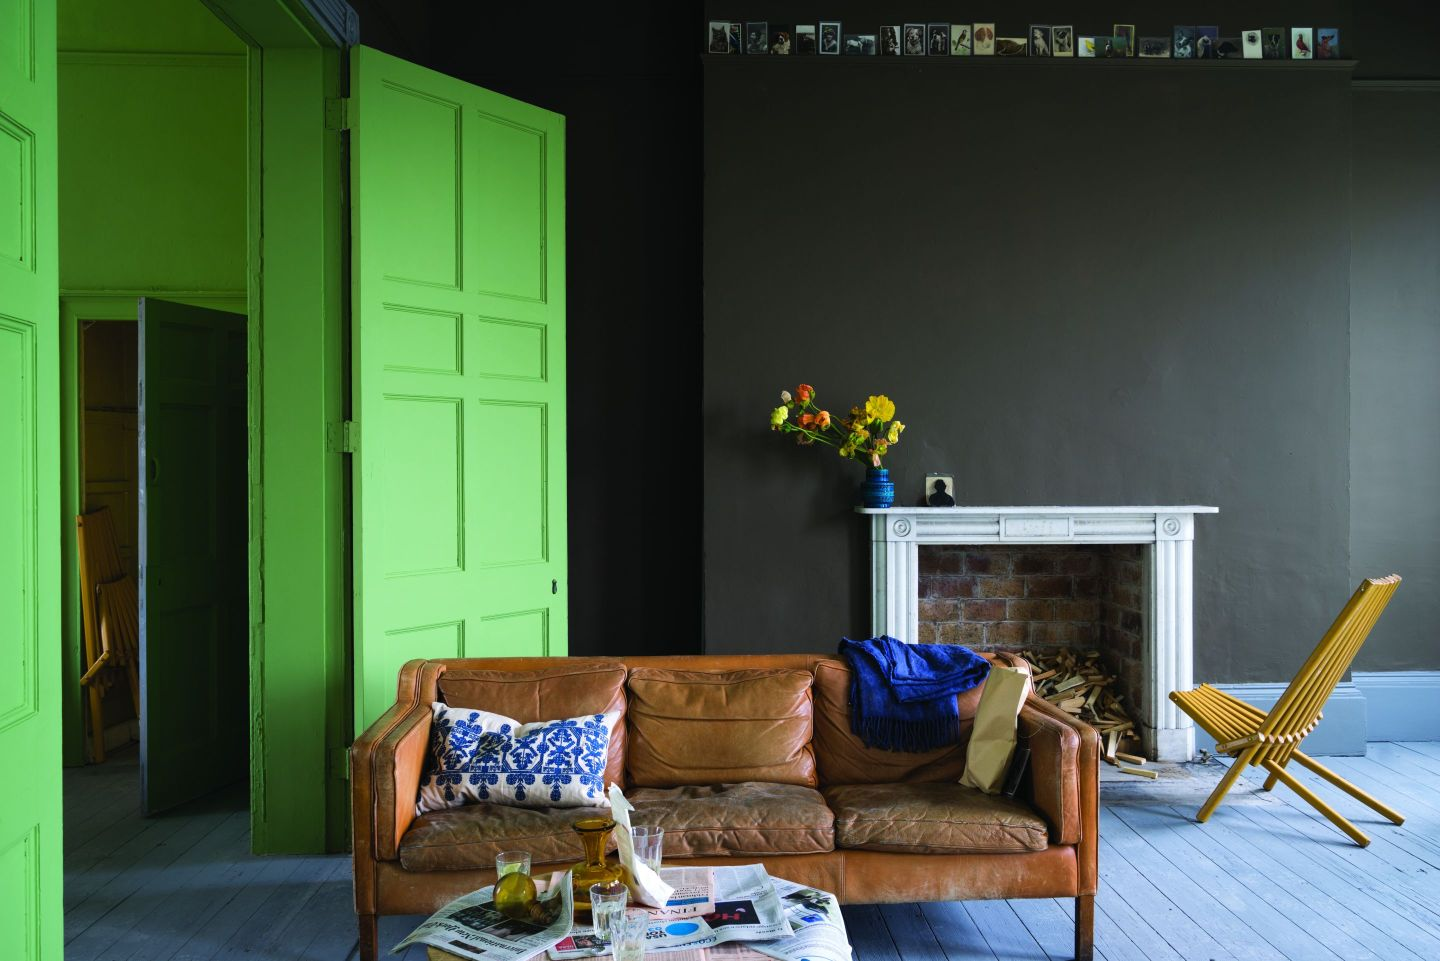 FarrowBall_1360430_SalonDrabNo290YeabridgeGreenNo2.jpg-1440x961 Paint Inspiration: 20 Colorful Rooms We Love